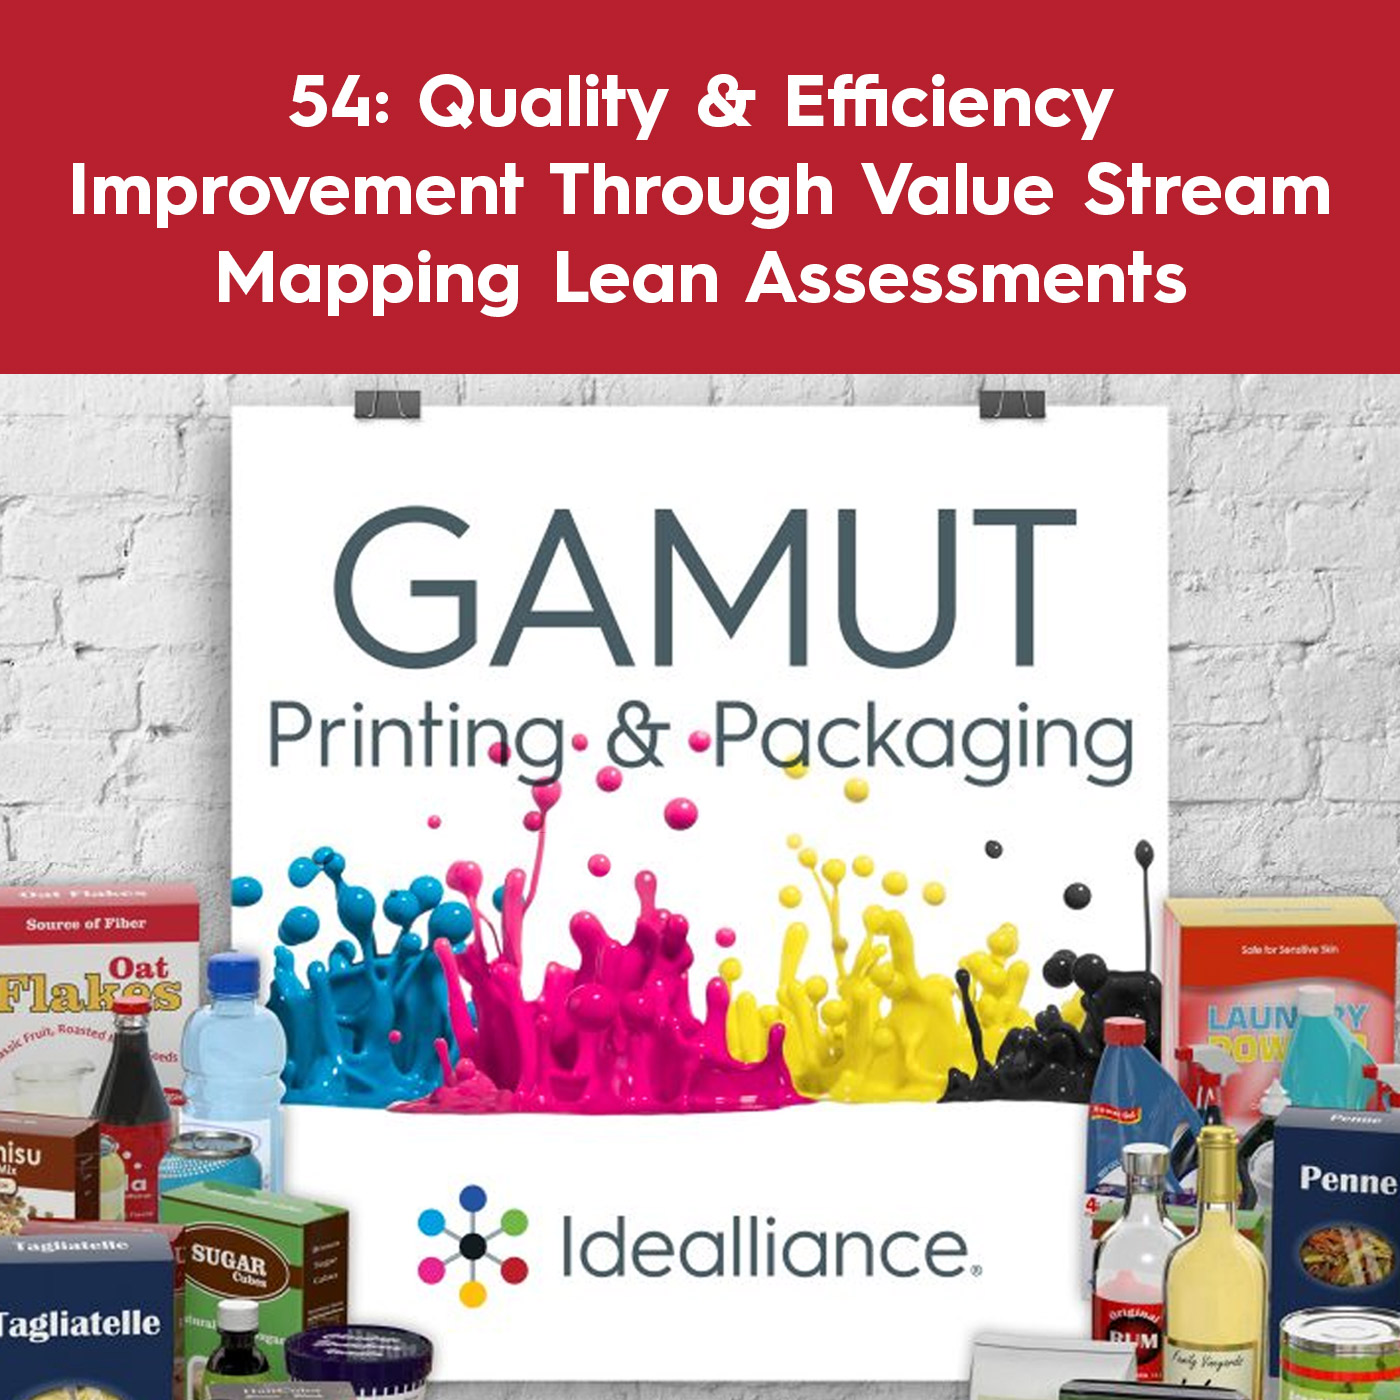 Quality & Efficiency Improvement Through Value Stream Mapping Lean Assessments | Gamut Podcast Episode #54